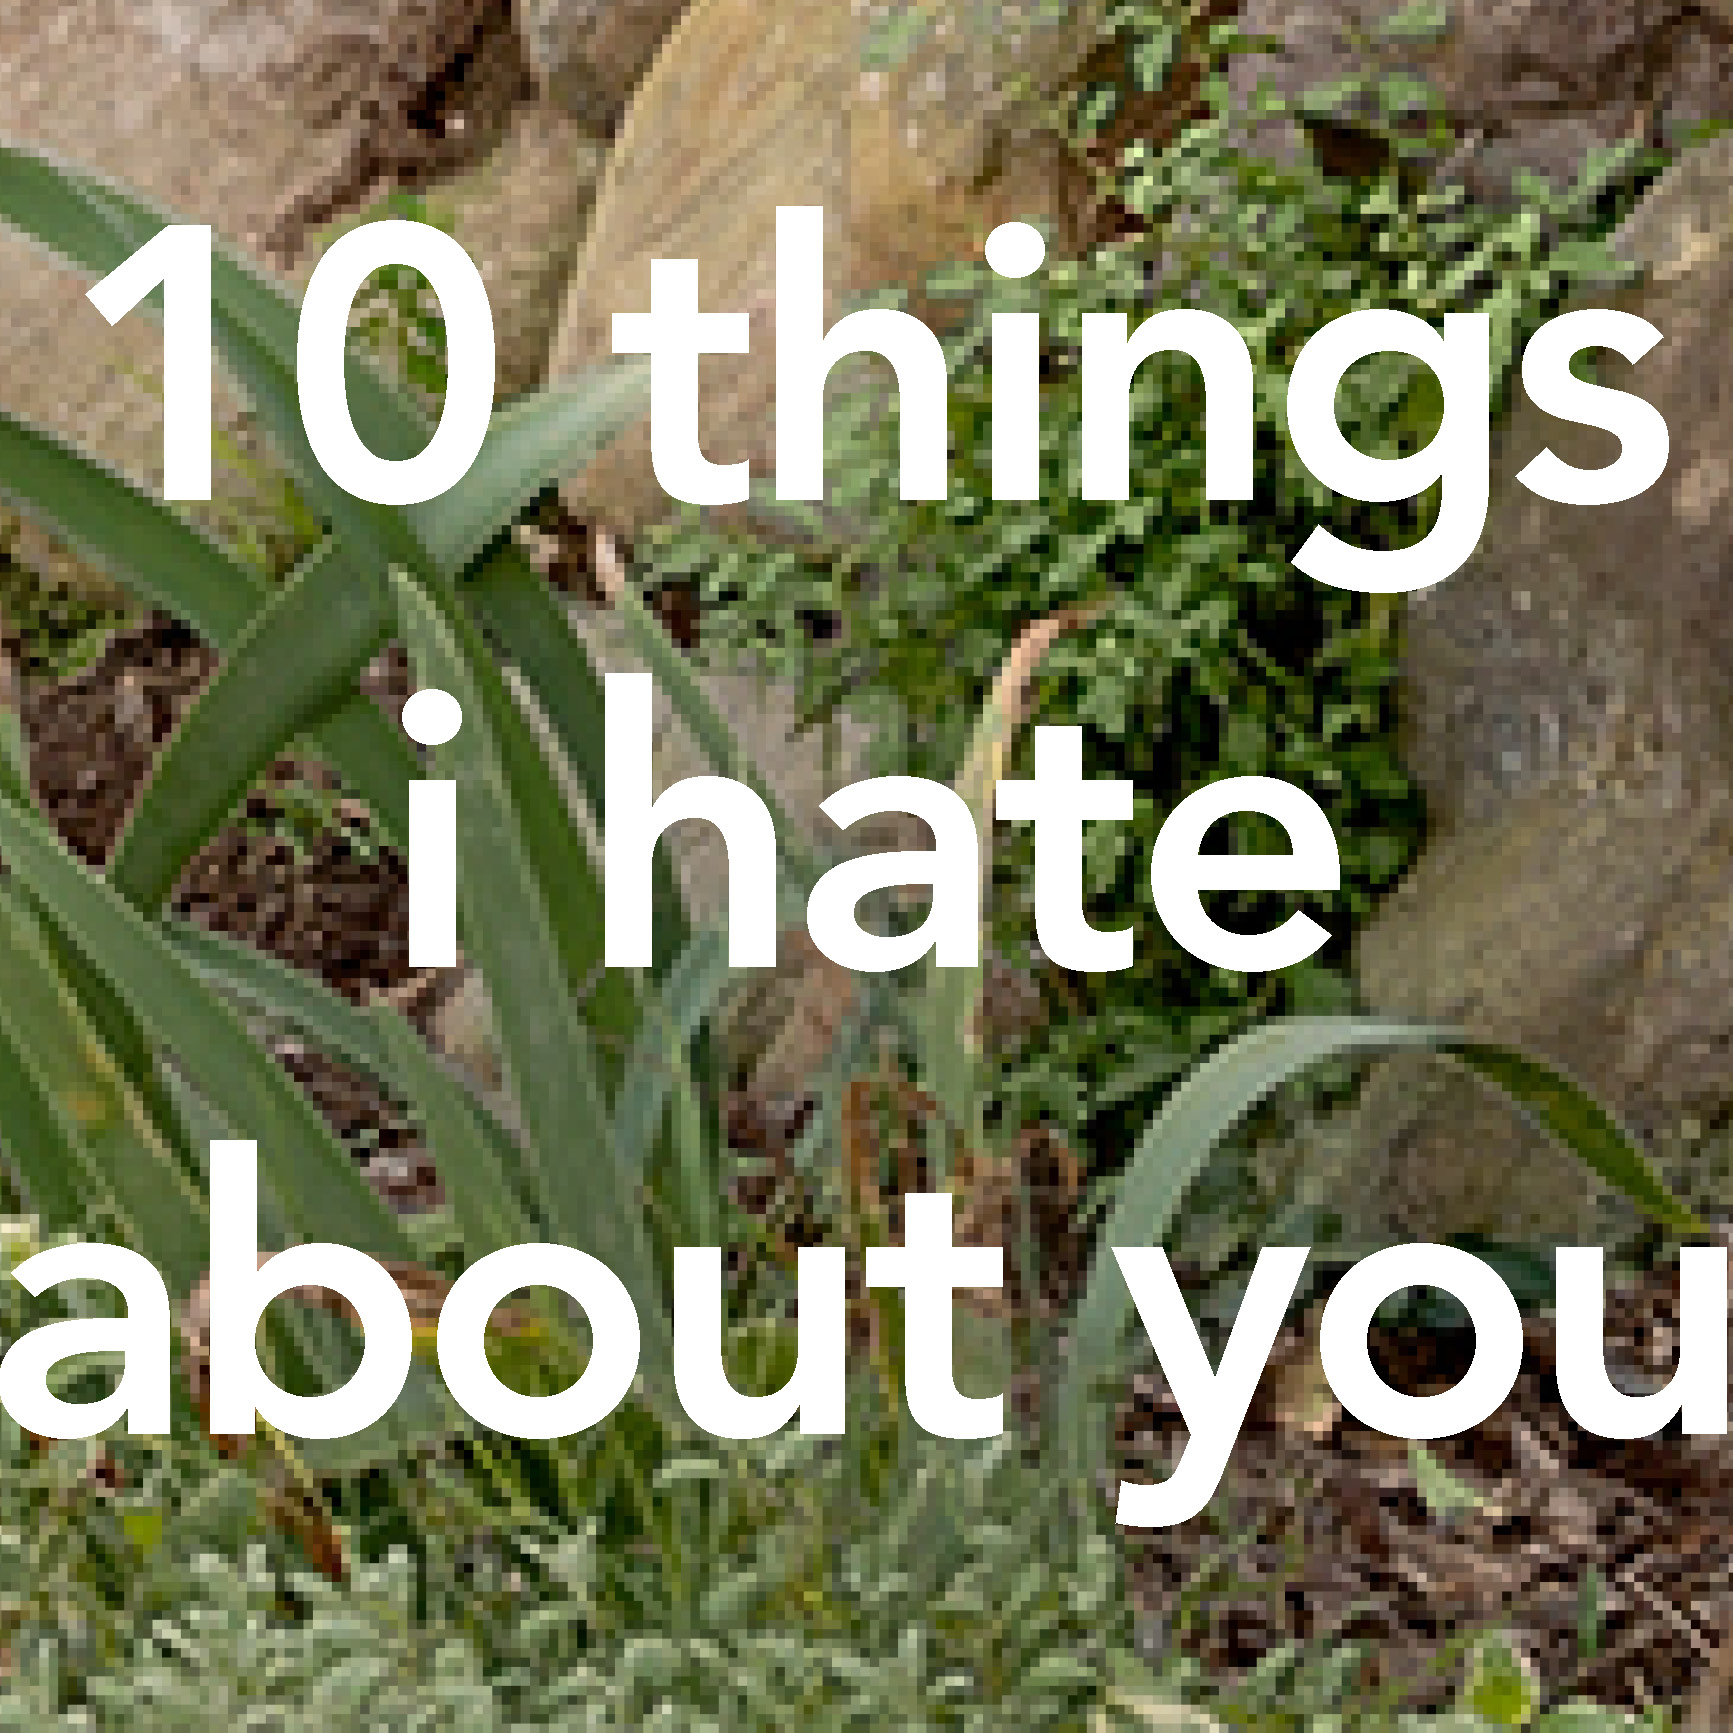 10 things i hate about you woodshed recording studio malibu ca